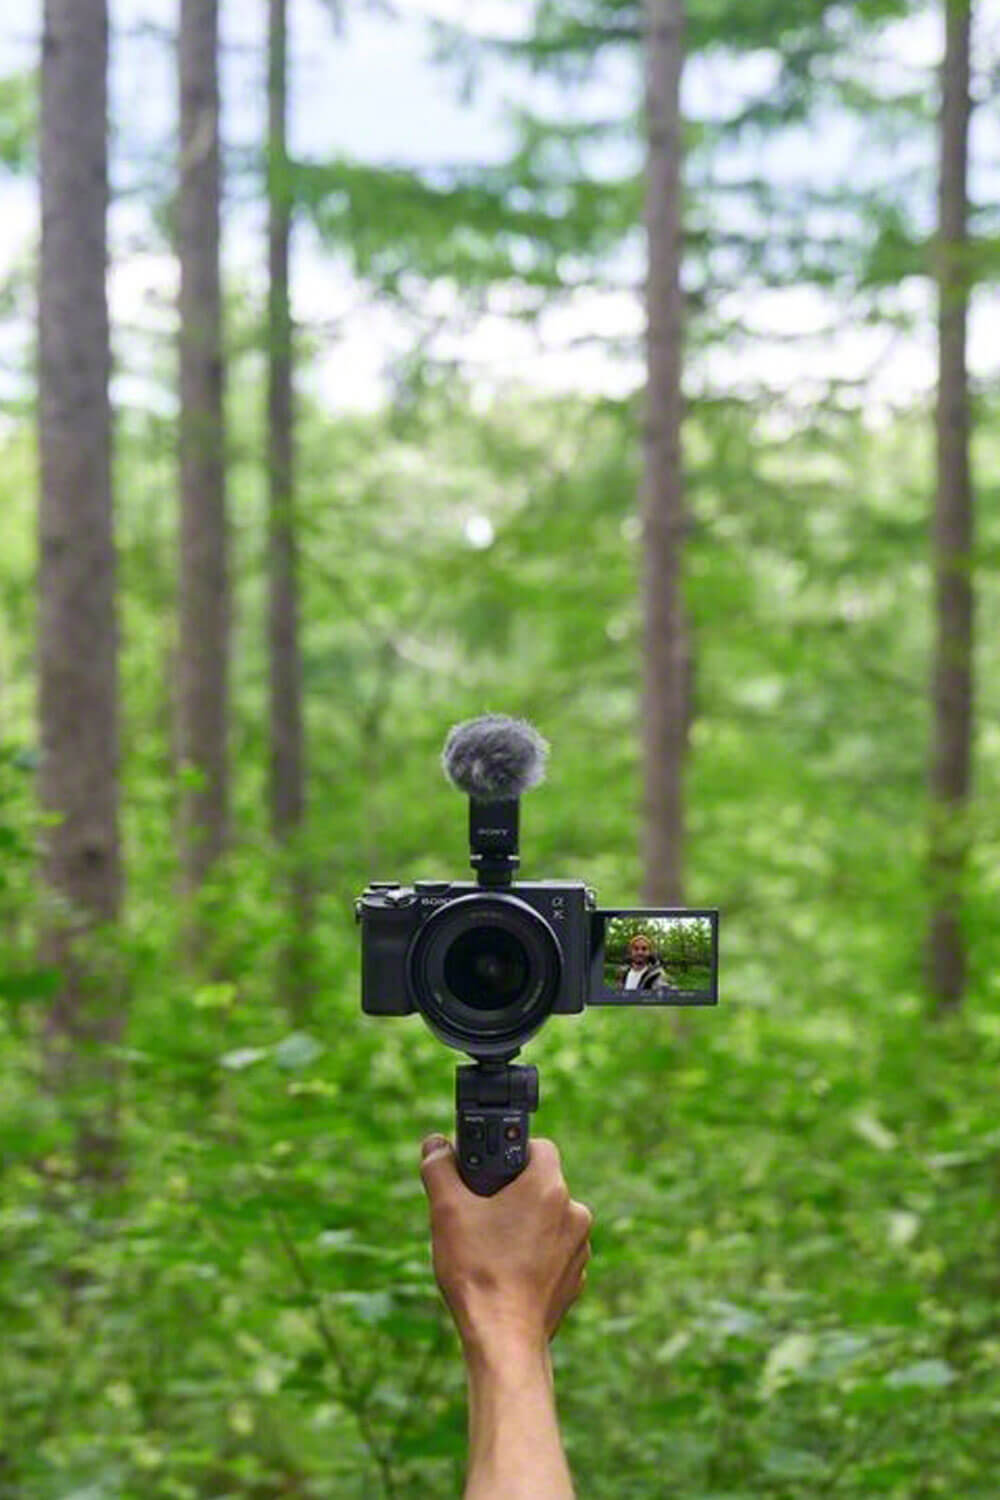 Movie making with shooting grip